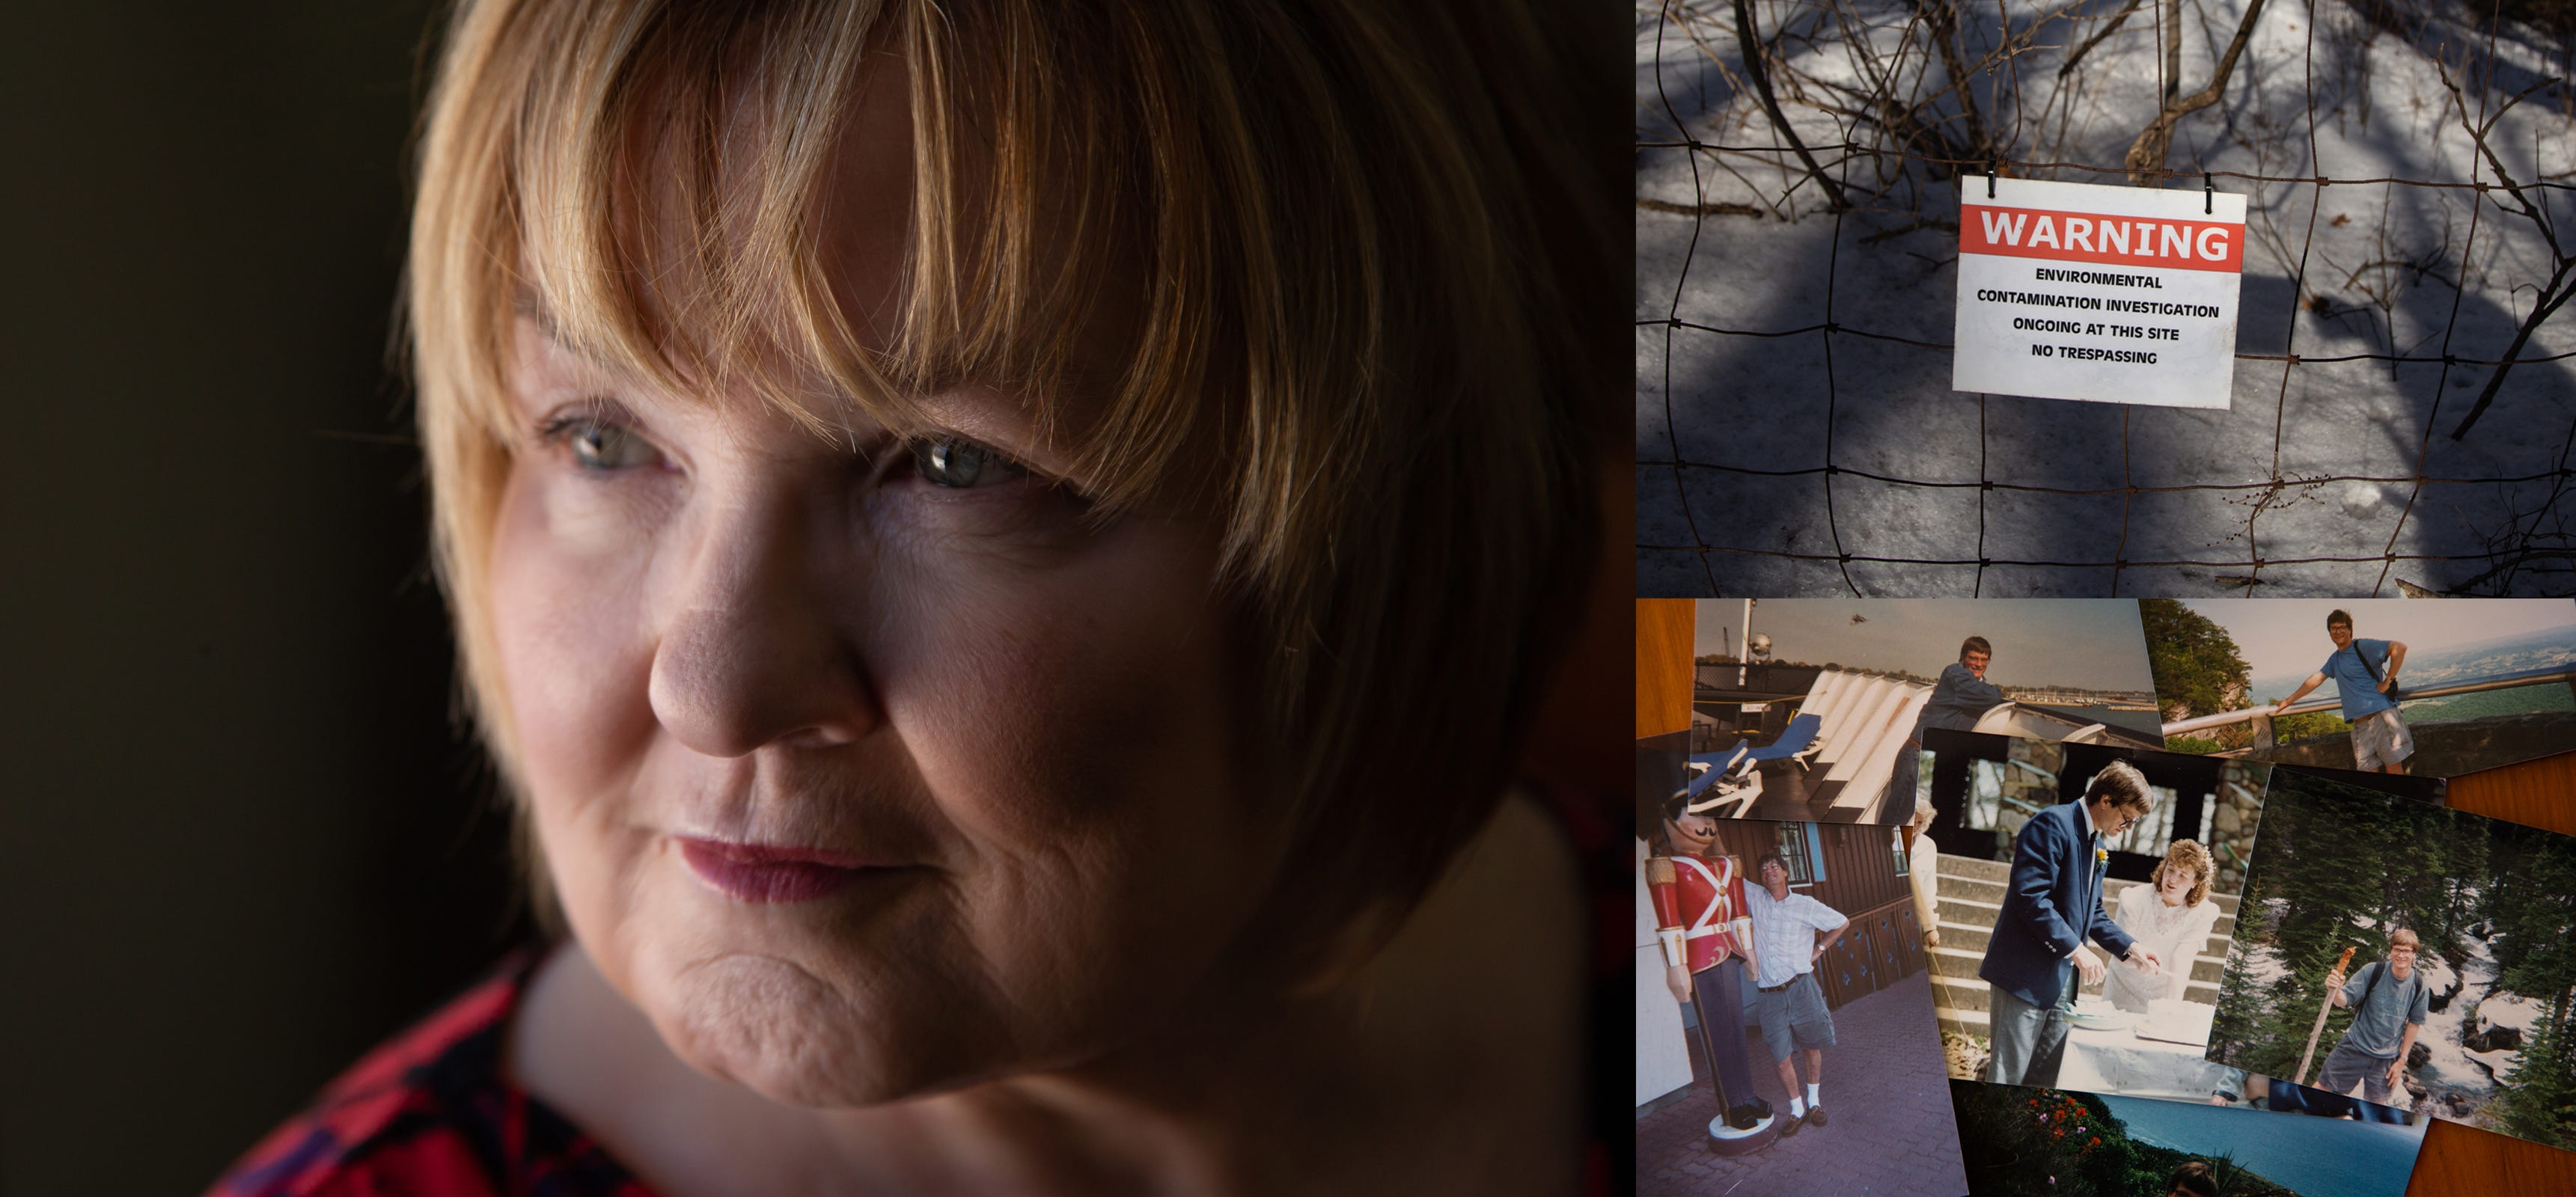 Left: Sandy Wynn-Stelt of Belmont stands in her home on Monday, March 11, 2019. The DEQ informed her in 2017 that her well water had PFAS contamination as high as 78,000 parts per trillion. Top right: A sign posted on a fence around the former House Street landfill in Belmont warning of environmental contamination research. Bottom left: A wedding photo of Sandy Wynn-Stelt of Belmont and her husband Joel Stelt. She has sky-high levels in her blood and her husband died of cancer leaving her wondering if it's related.